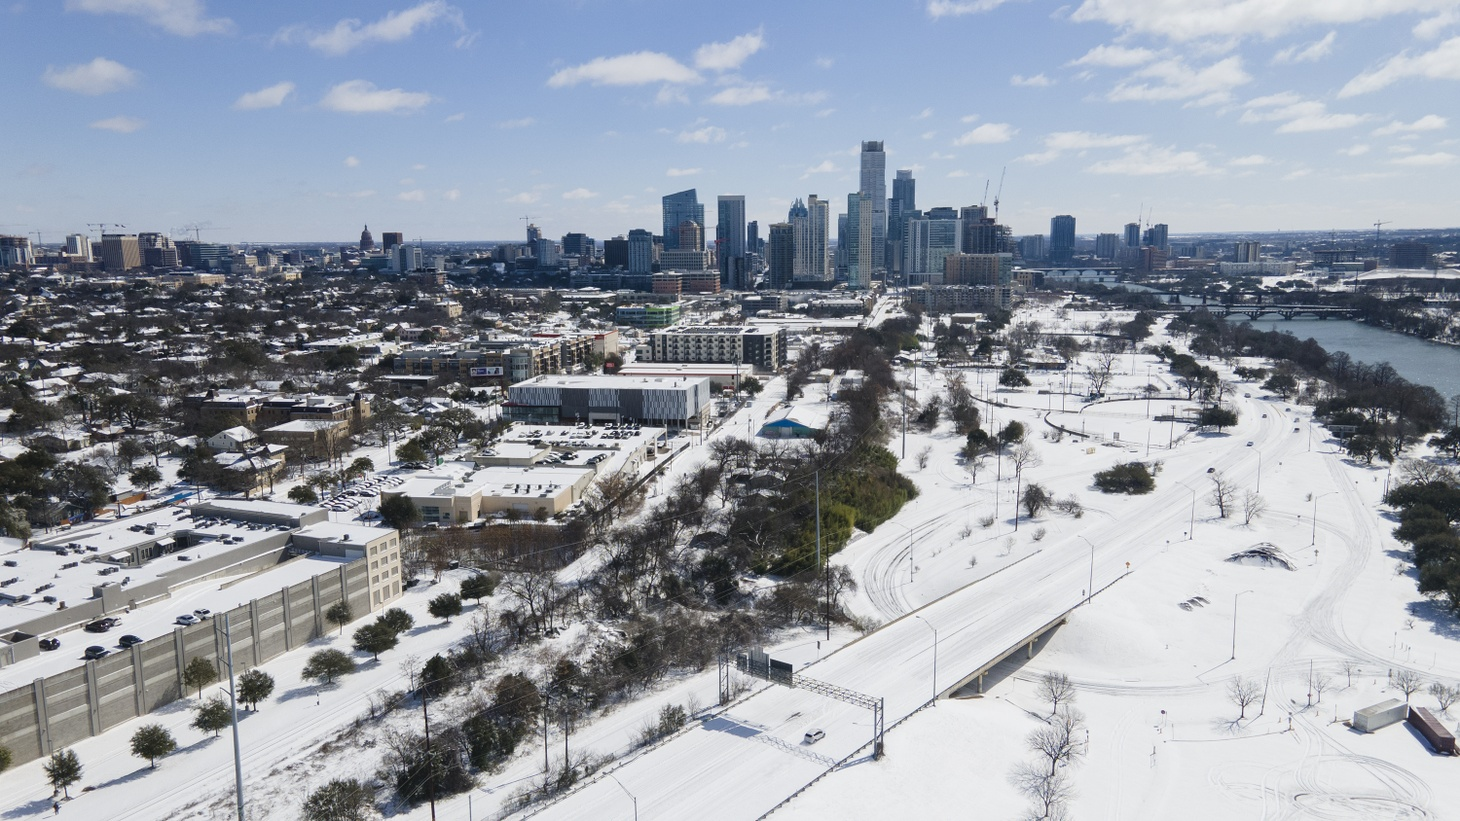 Downtown Austin, Texas, is covered in snow on Feb. 15, 2021.